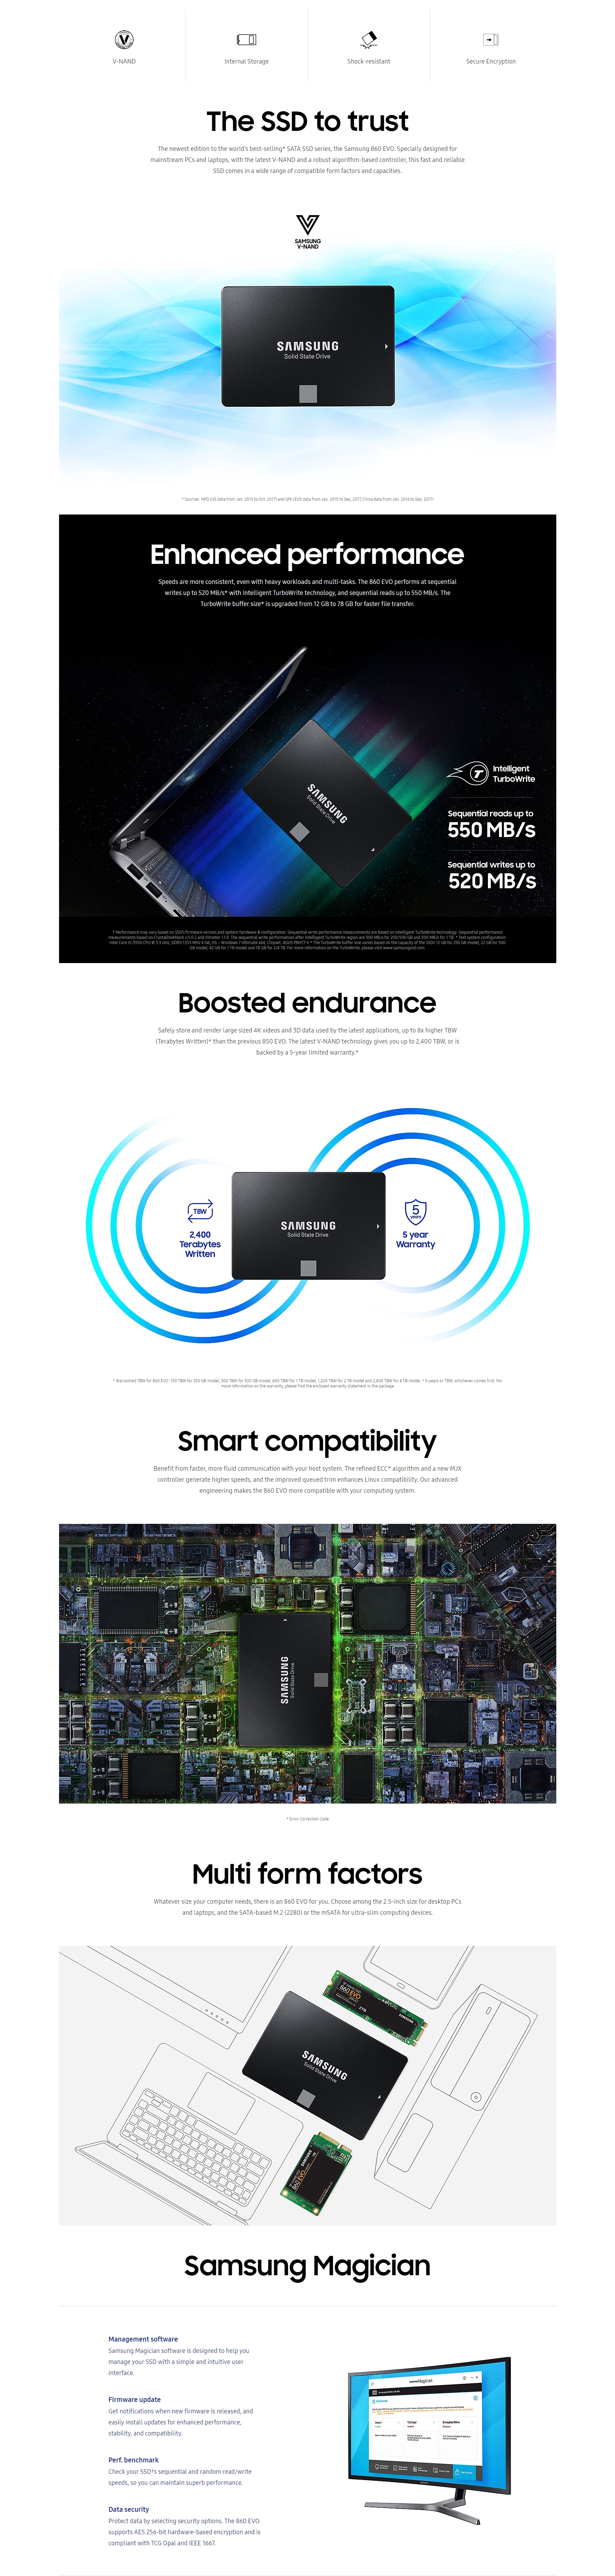 A large marketing image providing additional information about the product Samsung 860 EVO Series 1TB M.2 SSD - Additional alt info not provided